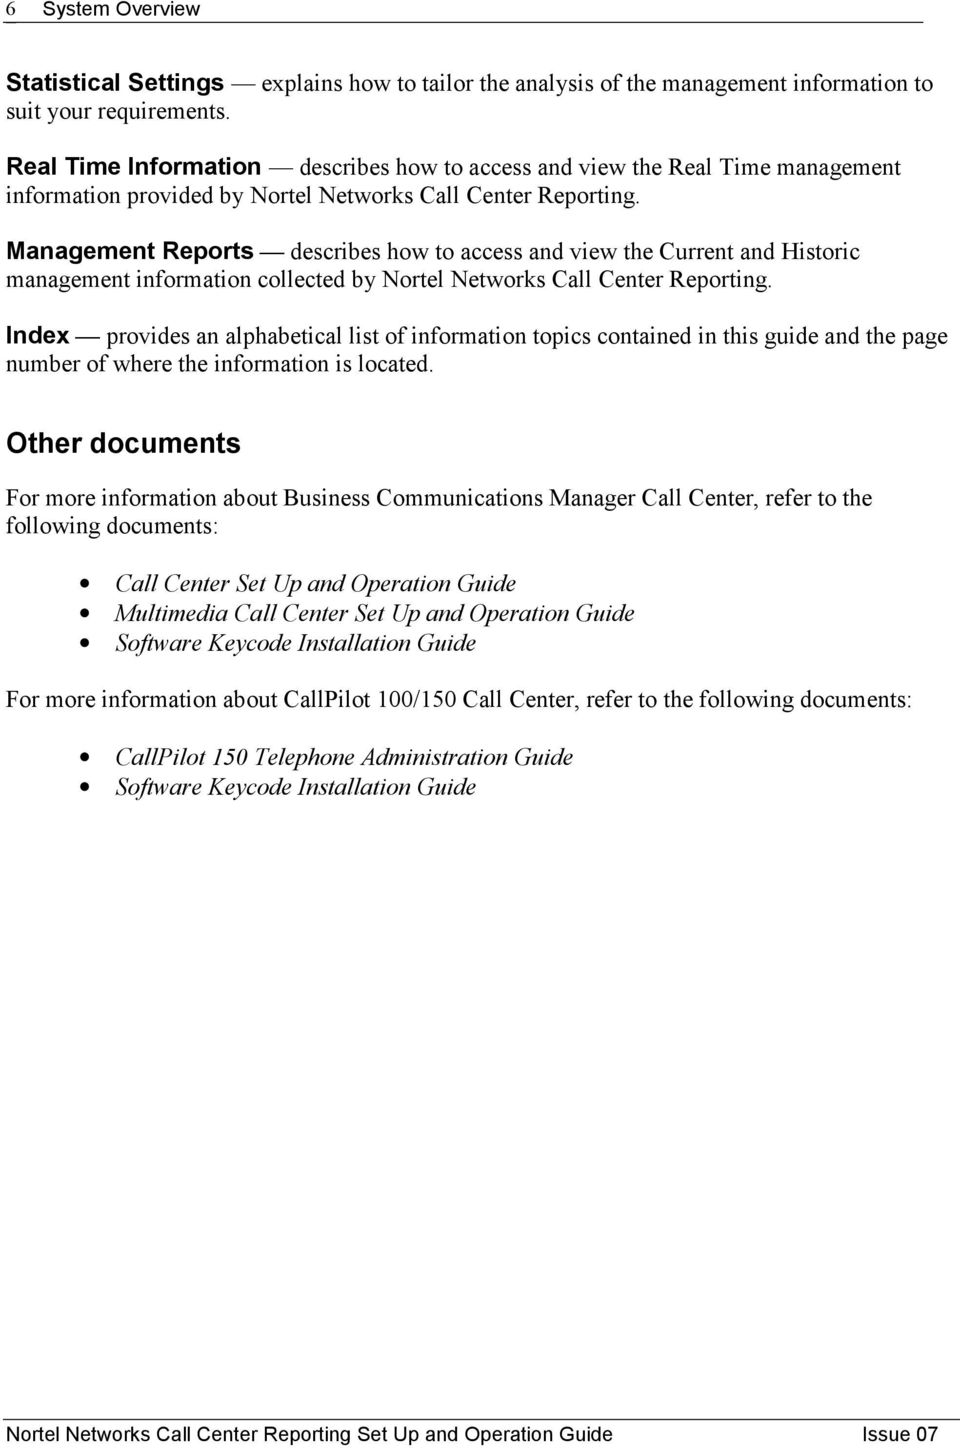 Management Reports describes how to access and view the Current and Historic management information collected by Nortel Networks Call Center Reporting.